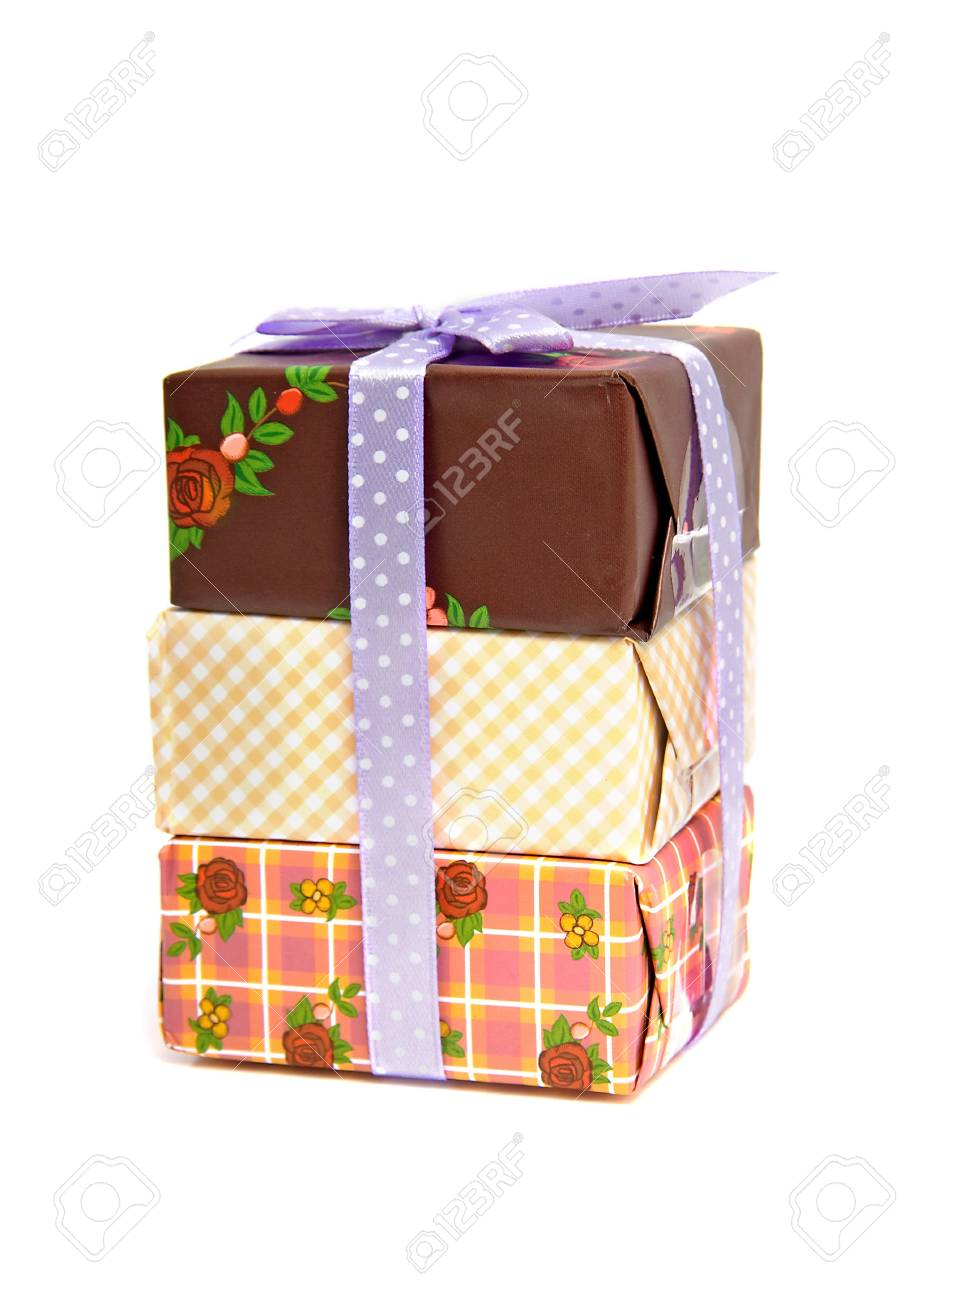 Pile of birthday presents with purple bow isolated on white background Stock Photo - 6551026